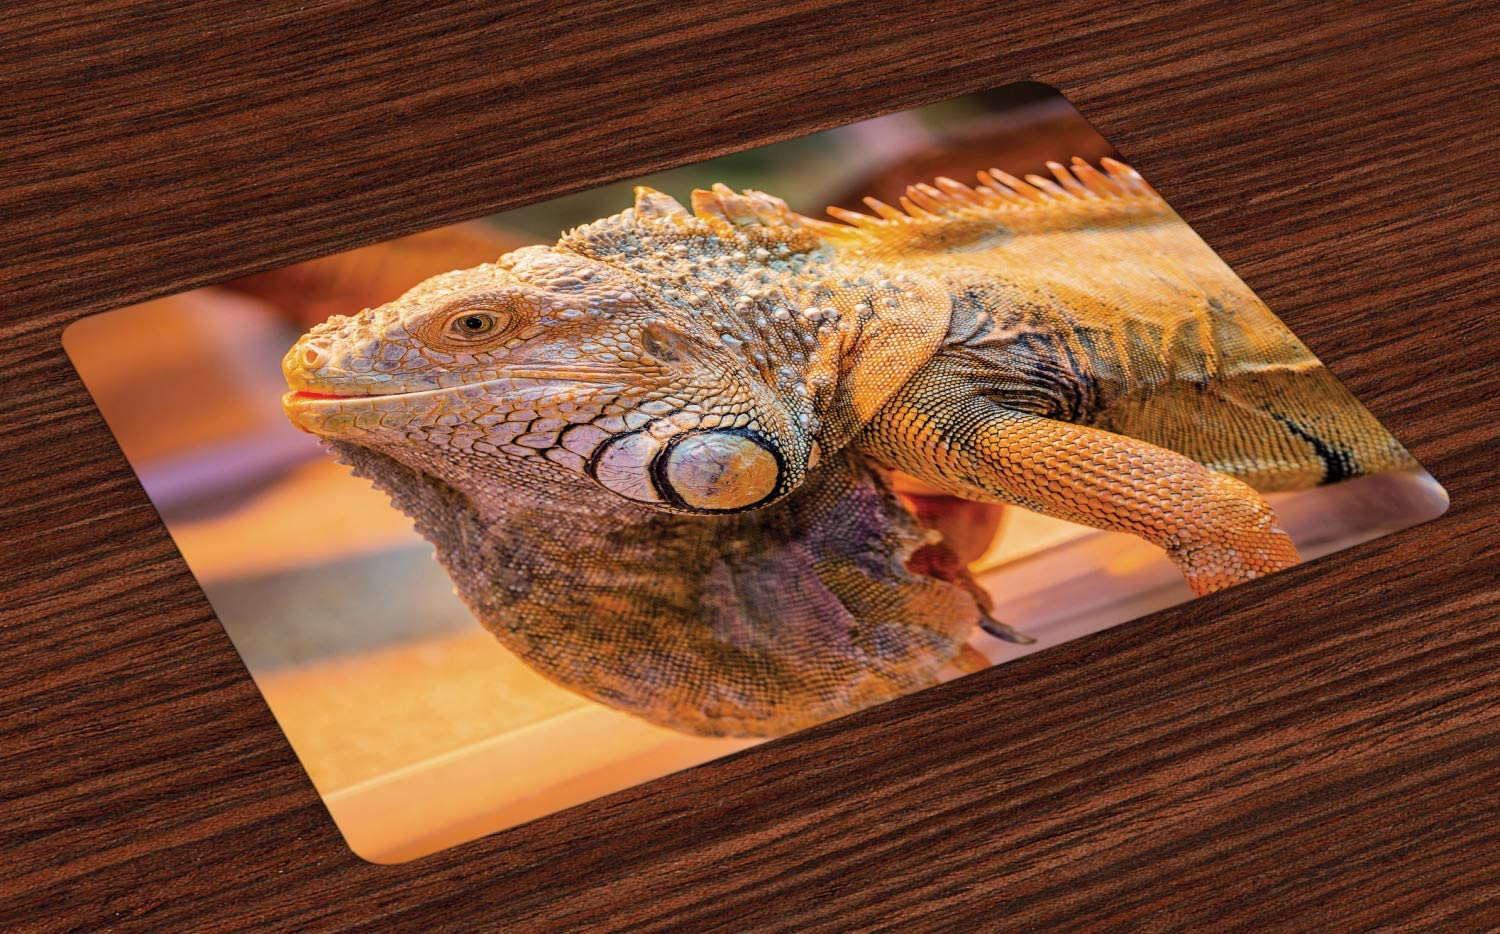 Ambesonne Iguana Place Mats Set of 4, South America Caribbean Indigenous Arboreal Animal with Blurred Background, Washable Fabric Placemats for Dining Table, Standard Size, Orange Grey